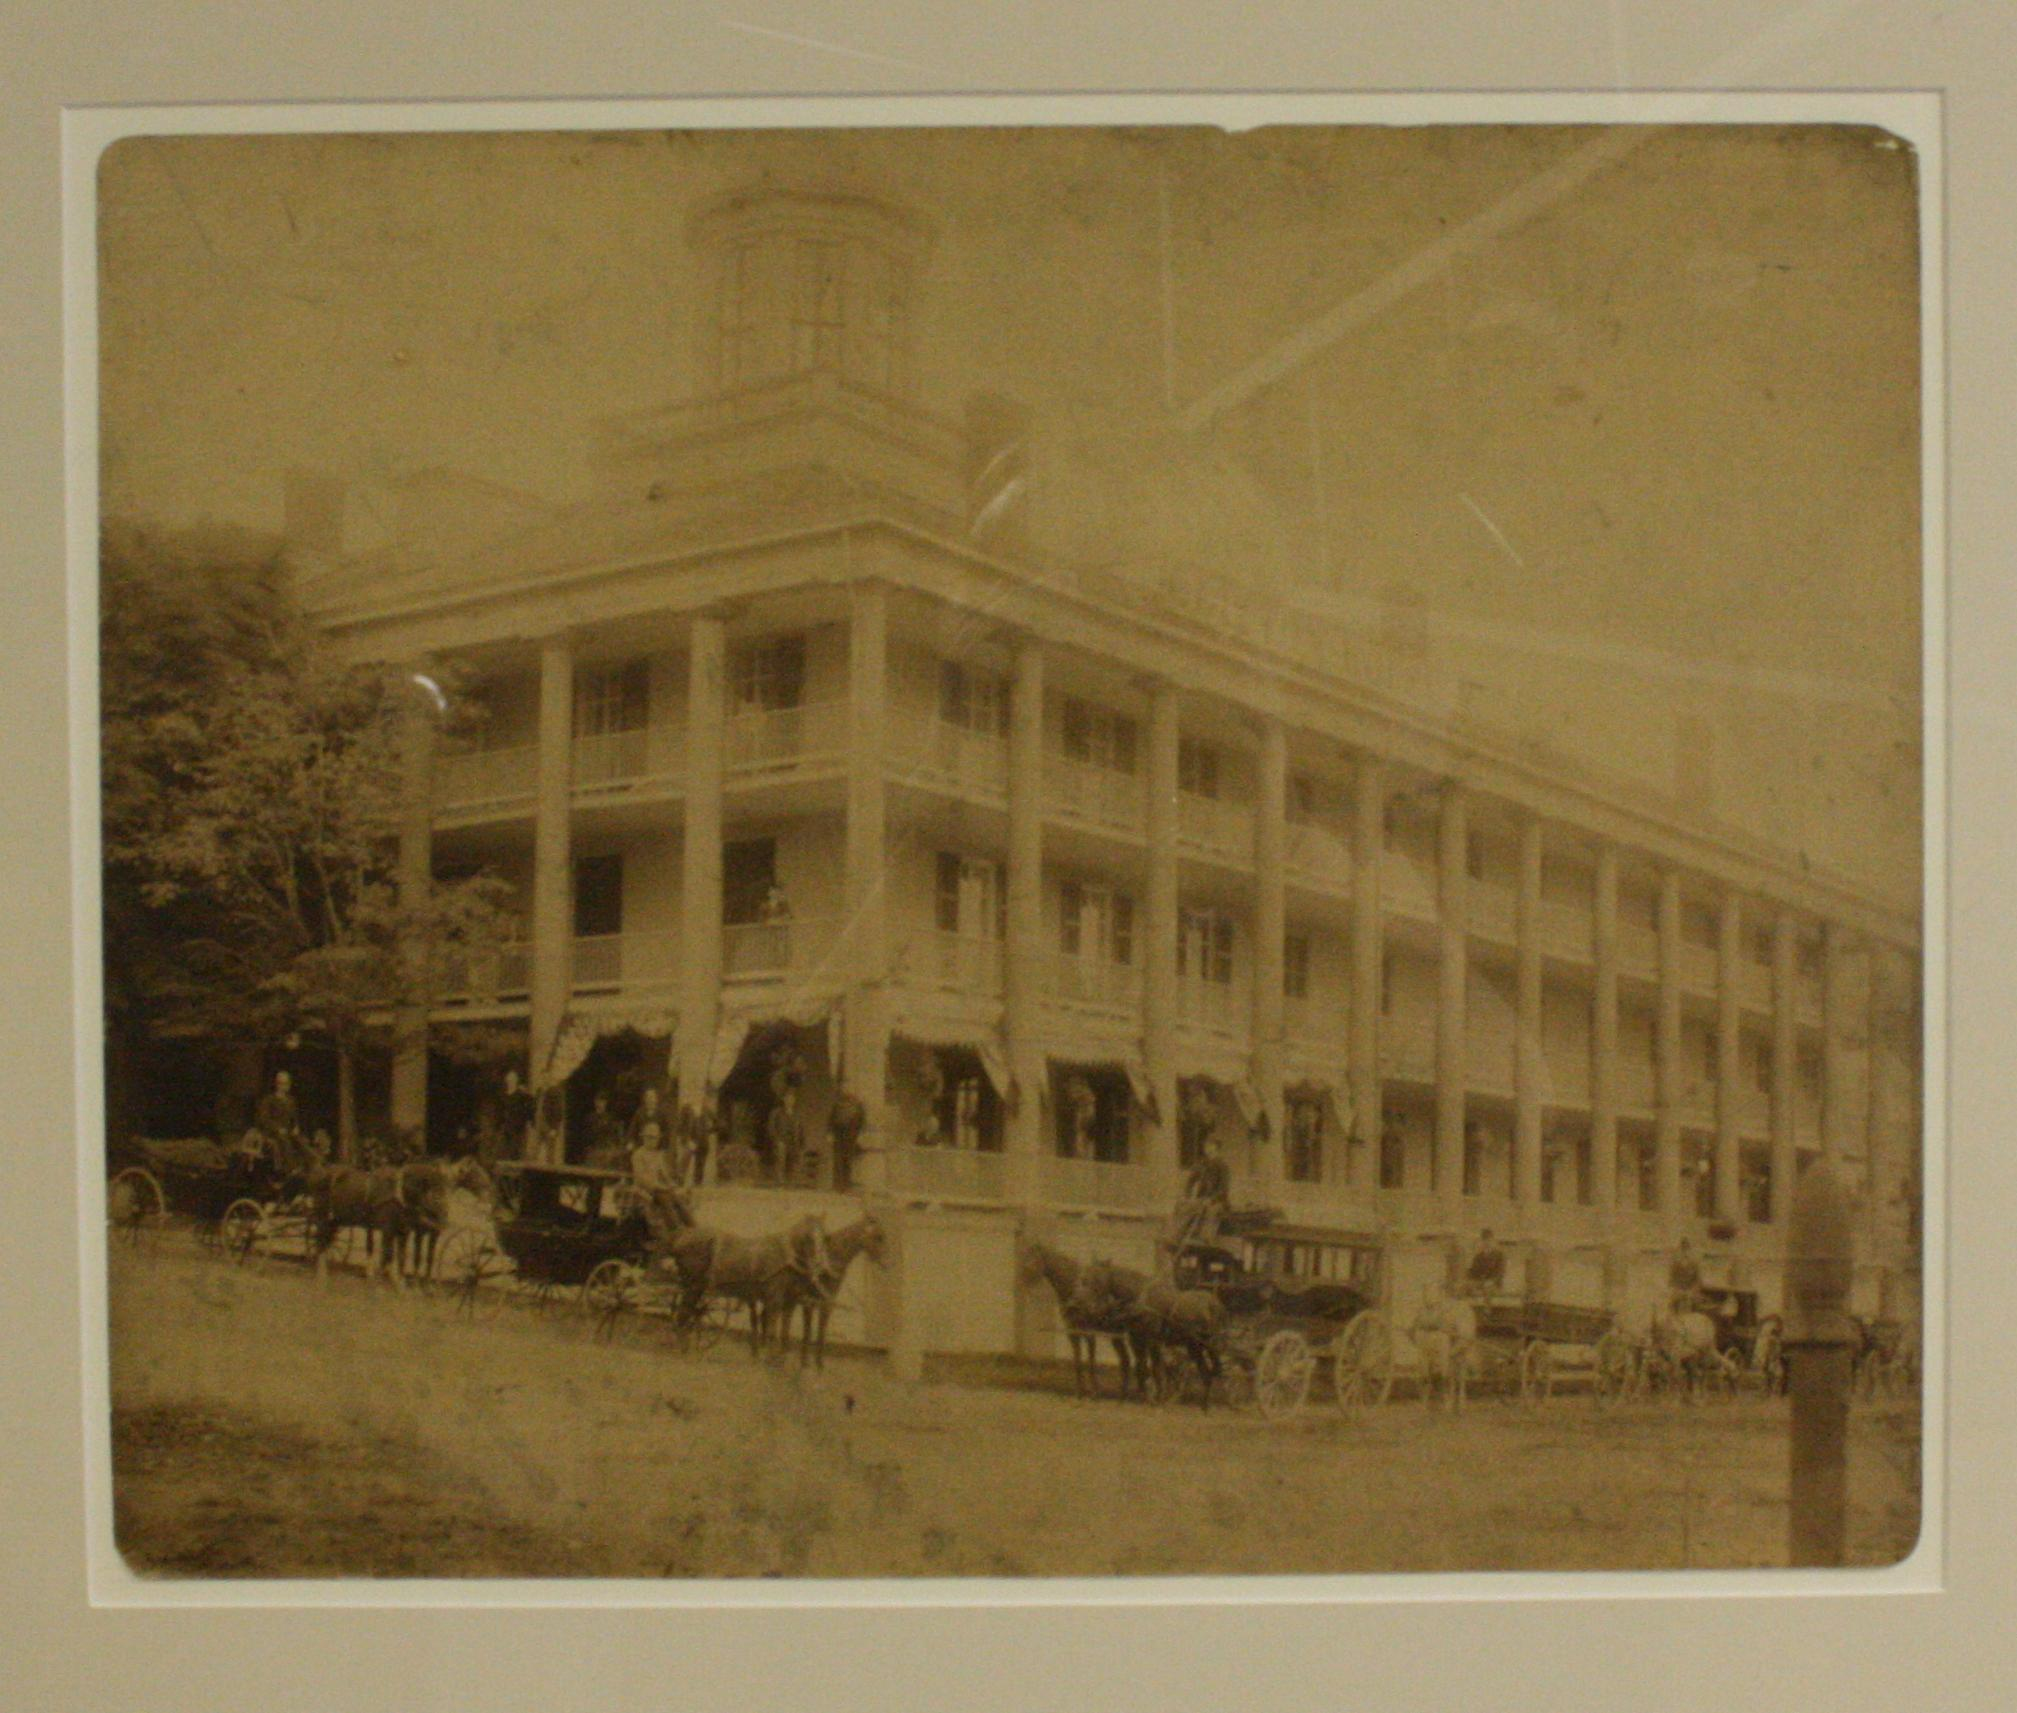 The first Clifton Hotel. Sepia tone small square photograph of the First Clifton Hotel , the photo has rounded corners. Large, popular hotel with many hourses and carriages in the froung along Clifton Hill and Niagara Parkway. There is one tree at far left, four-stroey buildings with columns running between each balcony and laticed bannisters. The roof has a cupola on top.